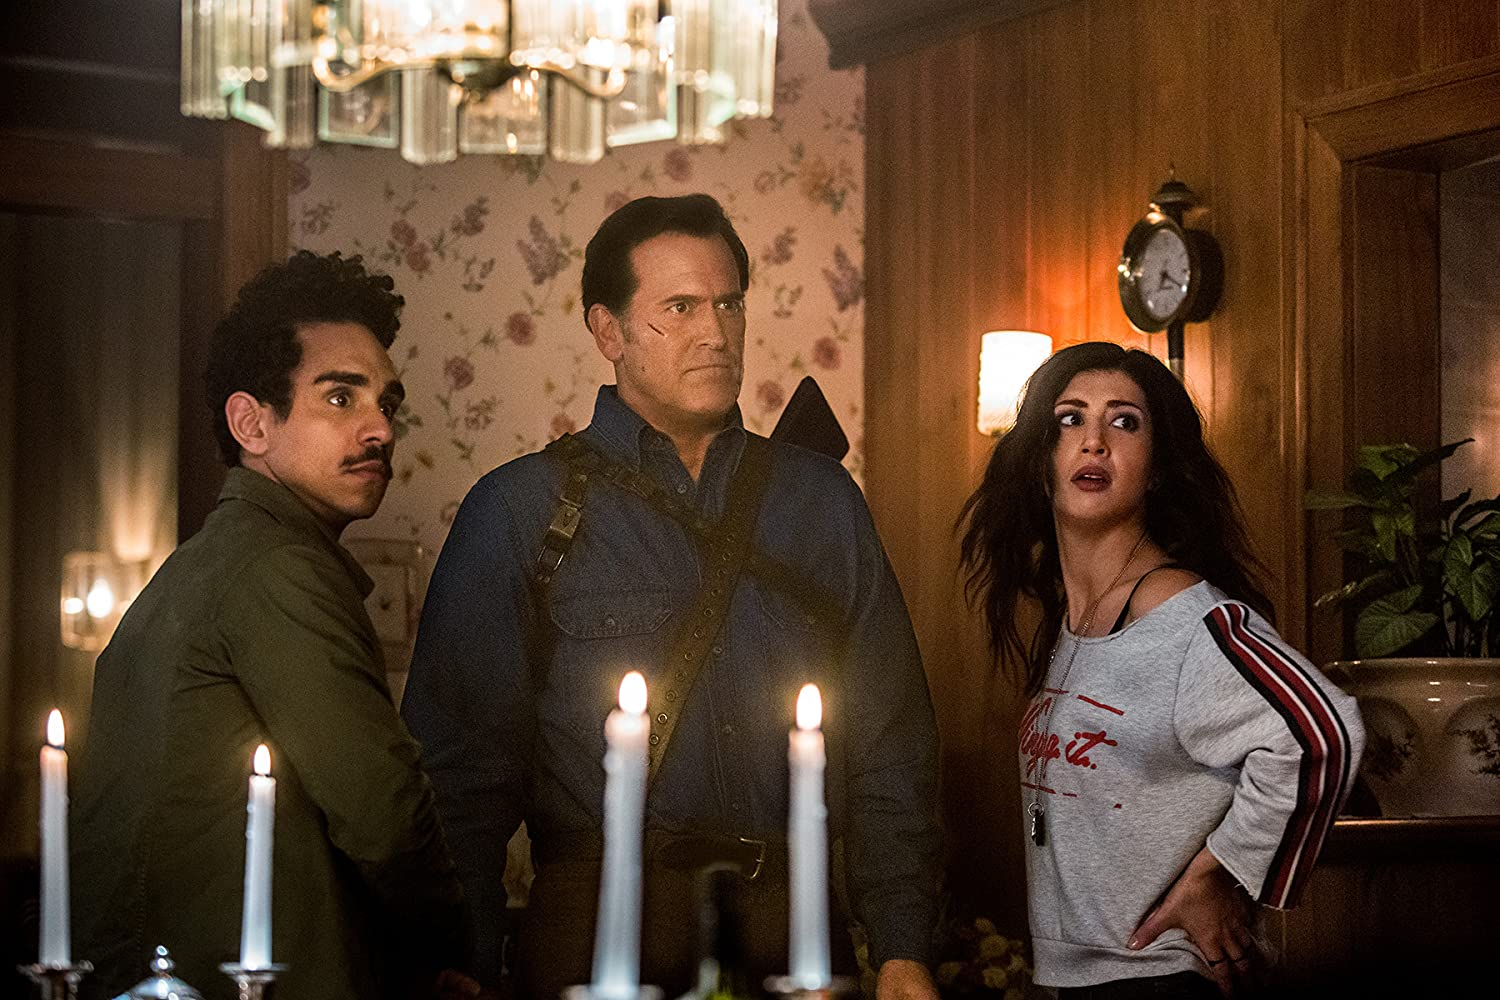 Bruce Campbell, Ray Santiago, and Dana DeLorenzo in Ash vs Evil Dead (2015)